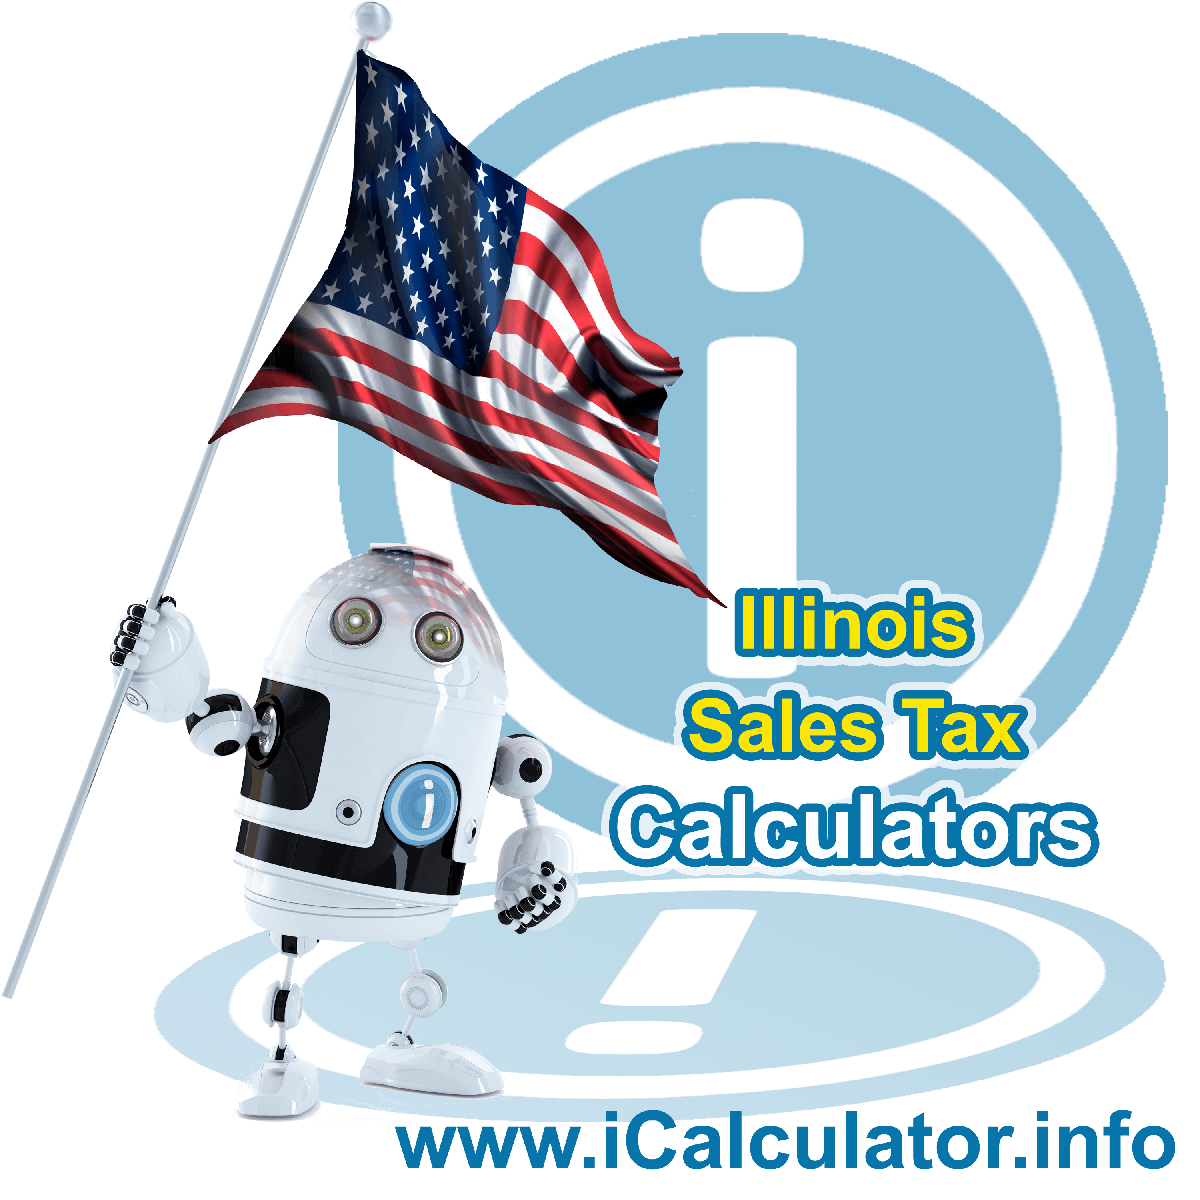 Liverpool Sales Rates: This image illustrates a calculator robot calculating Liverpool sales tax manually using the Liverpool Sales Tax Formula. You can use this information to calculate Liverpool Sales Tax manually or use the Liverpool Sales Tax Calculator to calculate sales tax online.